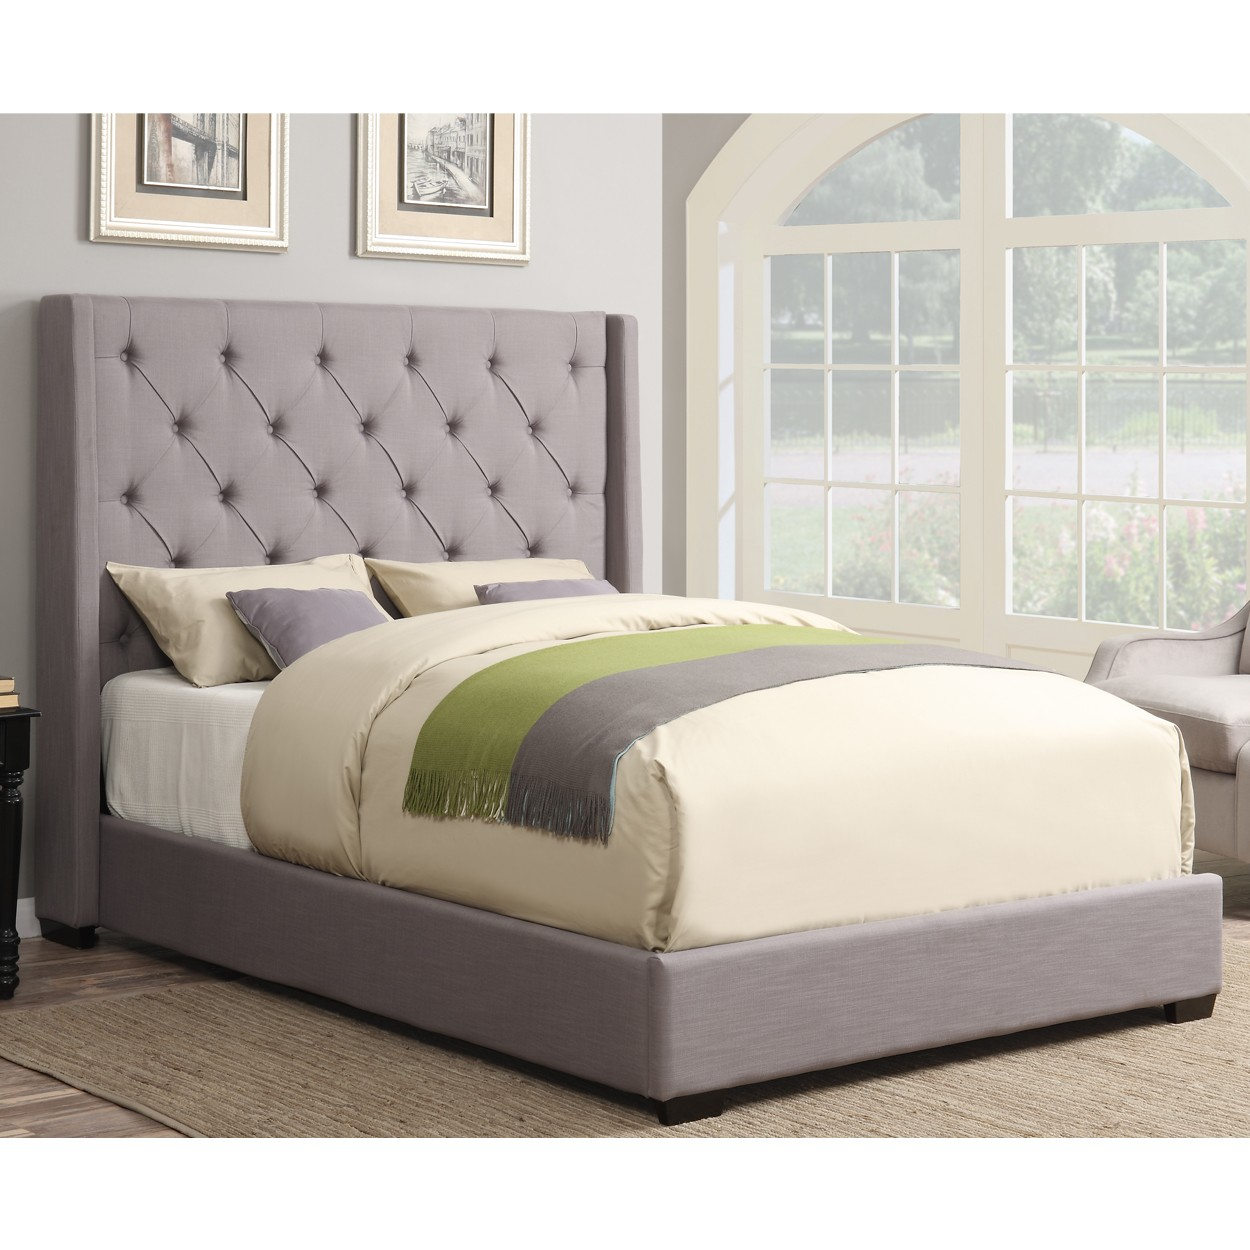 upholstered beds contemporary shelter fabric upholstered bed in ash LWCNAJB